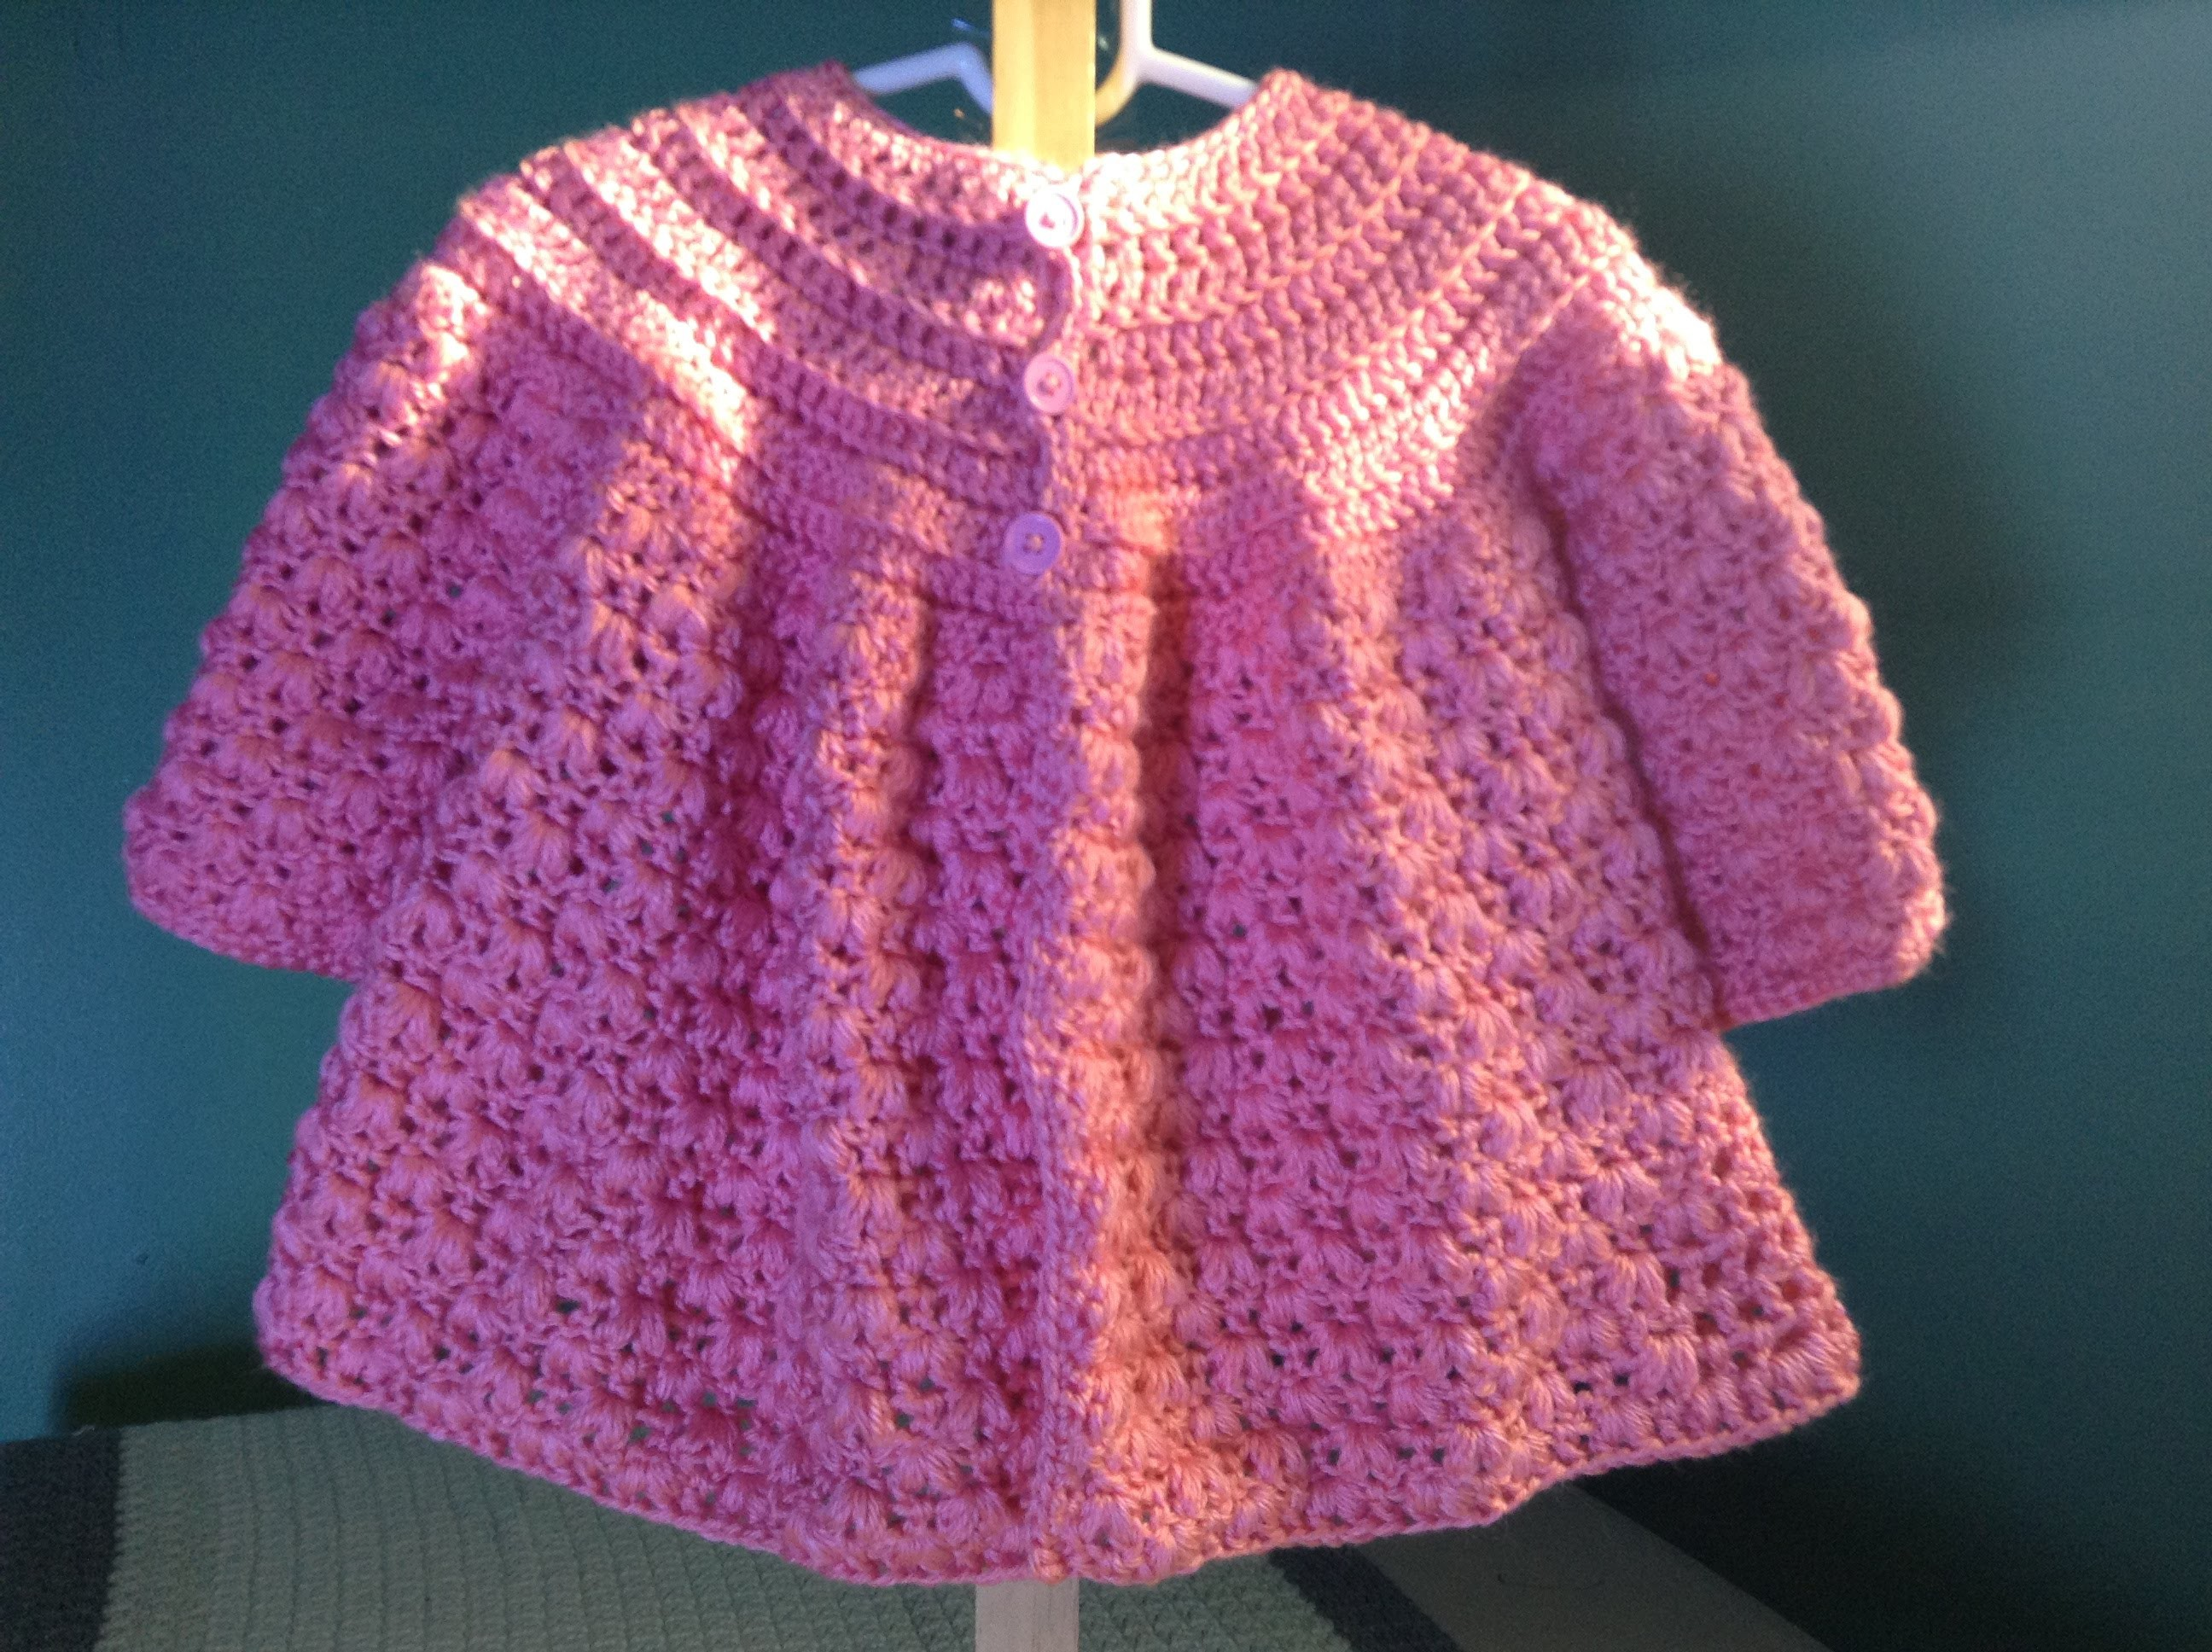 How to Crochet a Baby Sweater